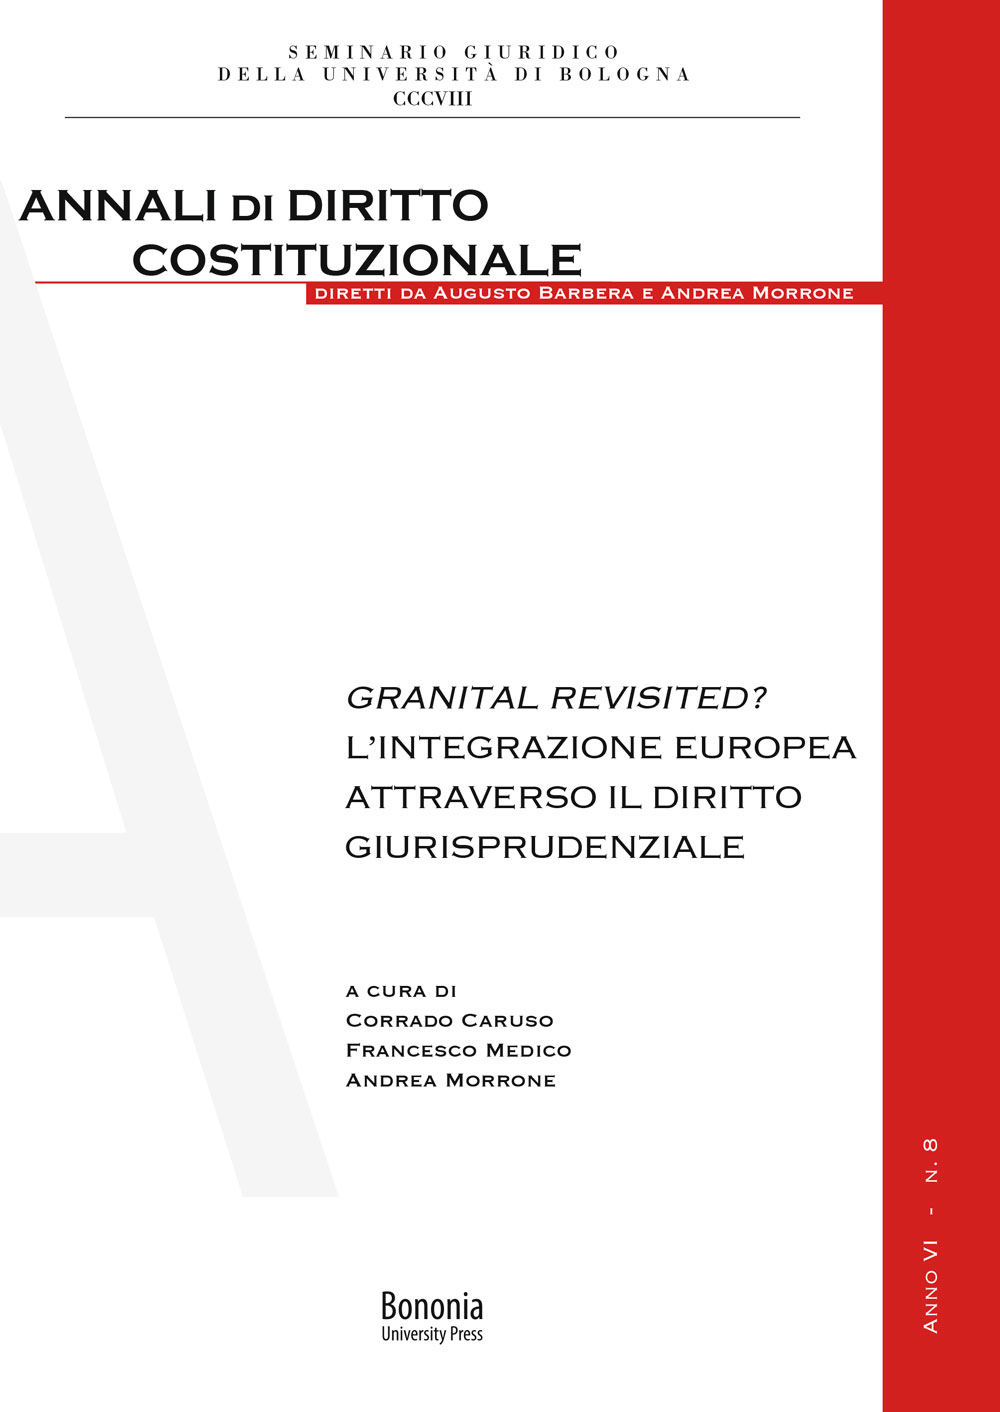 Granital Revisited? - Bononia University Press